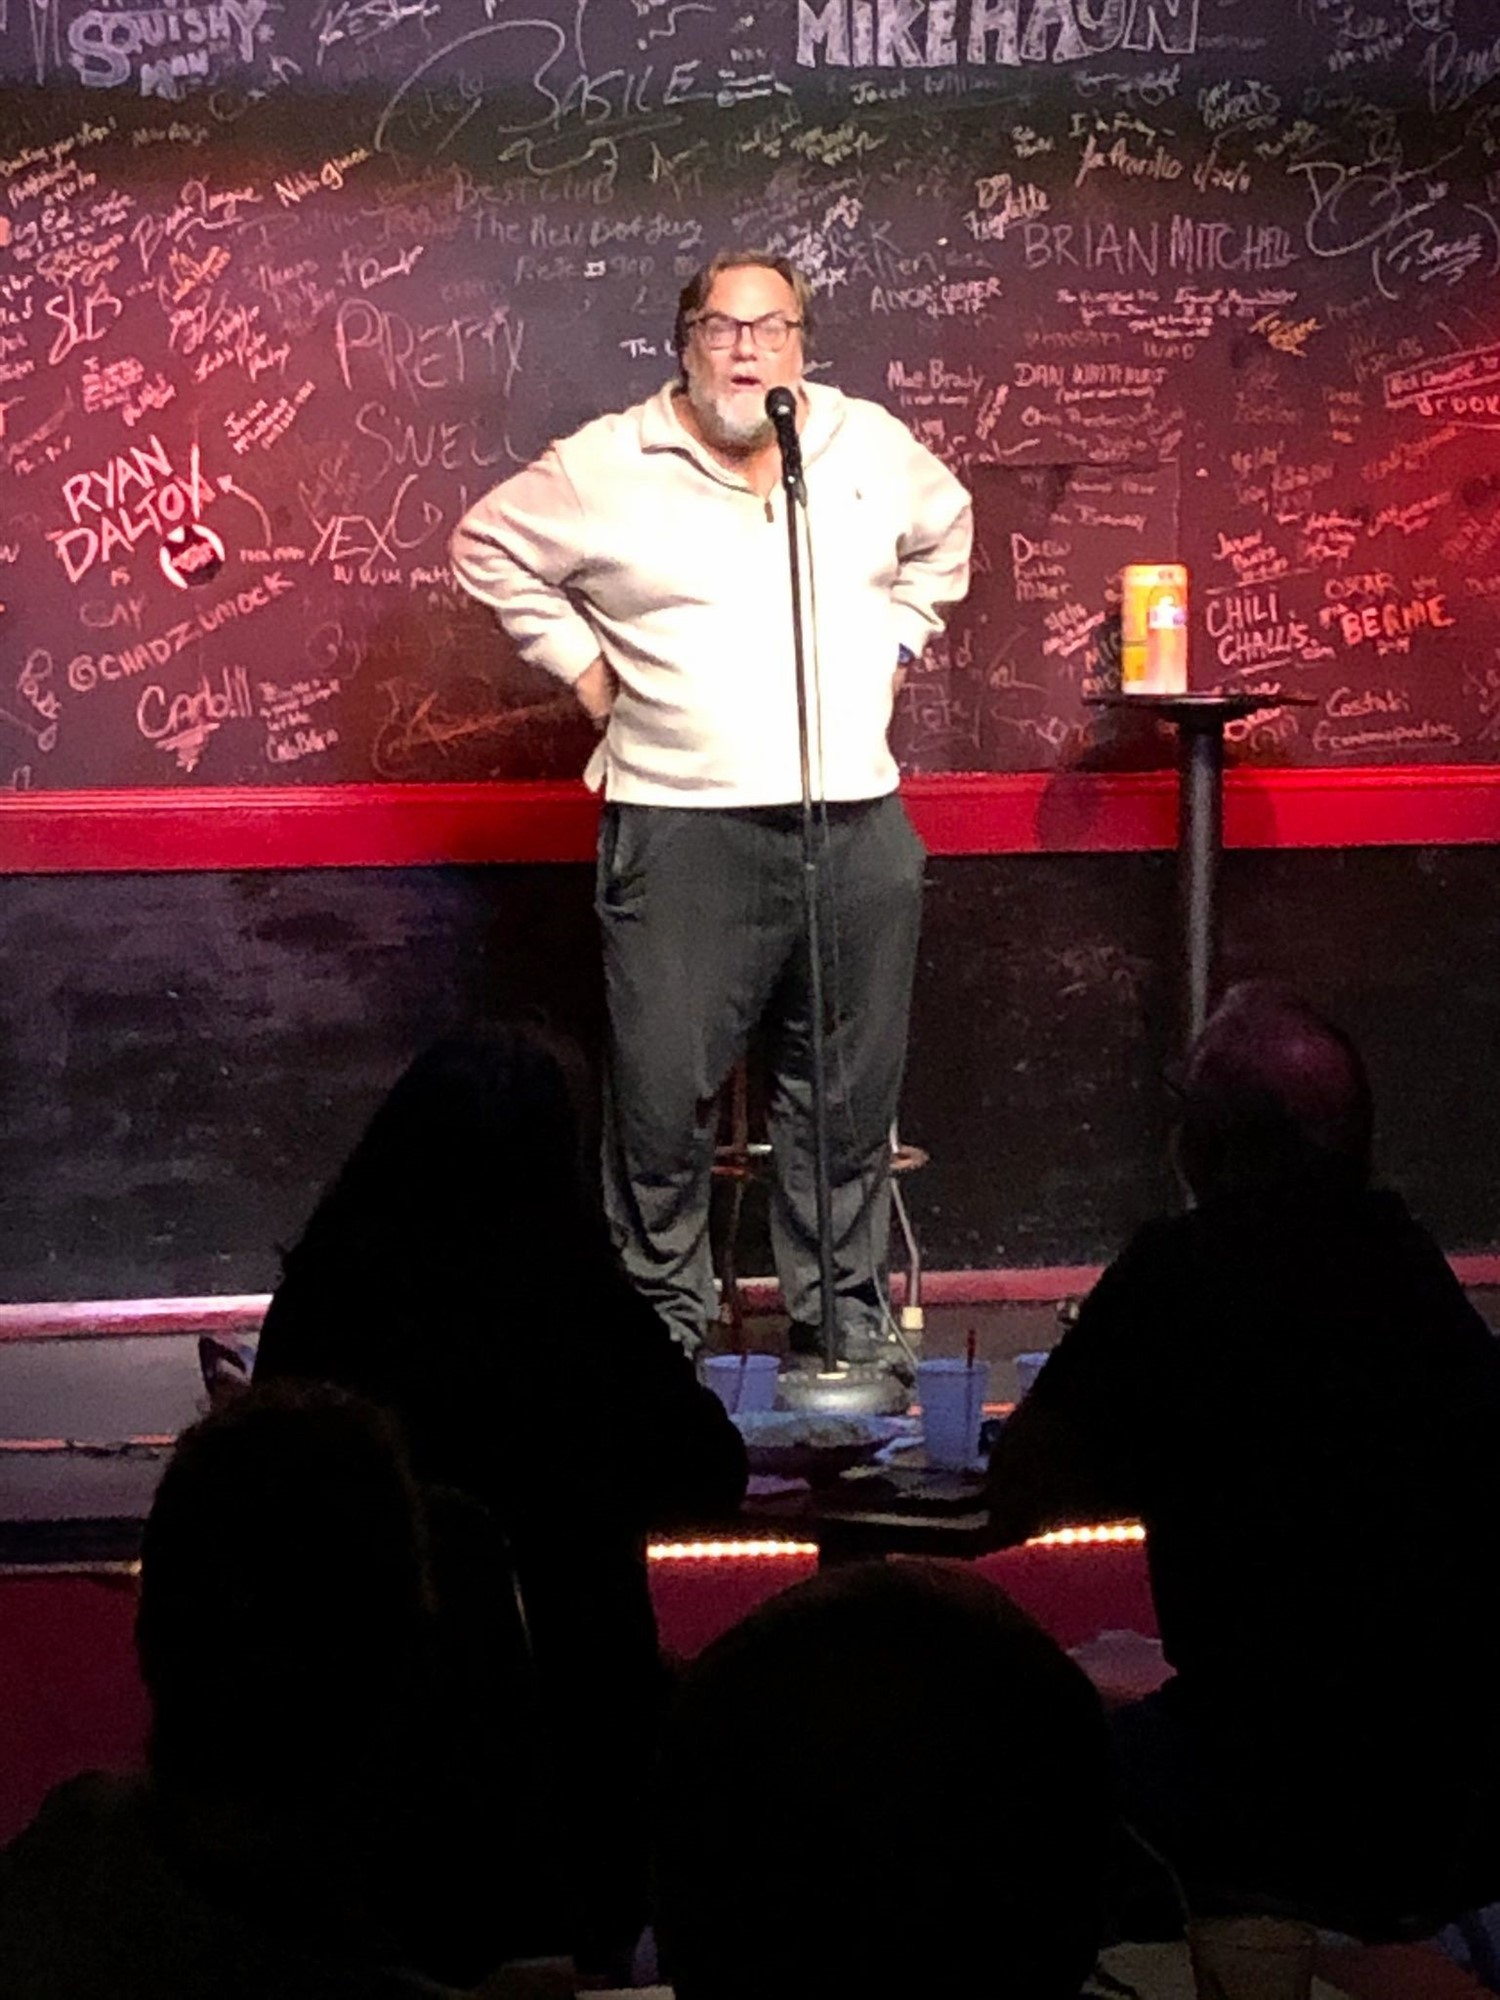 Kevin Farley 8:20 Show Funny Stop Comedy Club on Feb 12, 20:20@Funny Stop Comedy Club - Buy tickets and Get information on Funny Stop funnystop.online